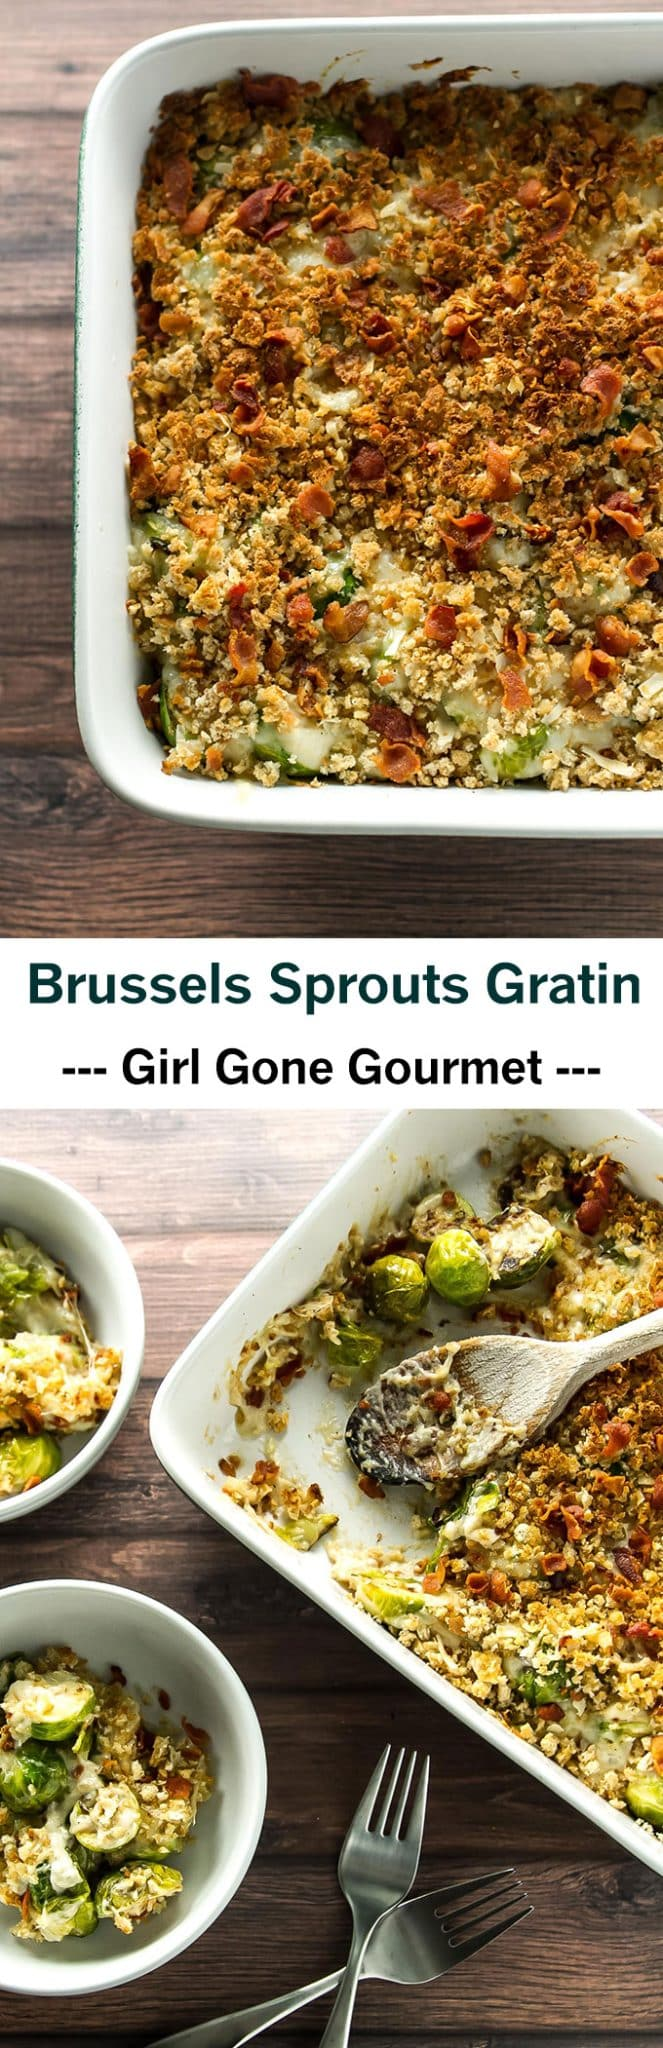 decadent Brussels sprouts gratin with a creamy Gruyere cheese sauce ...